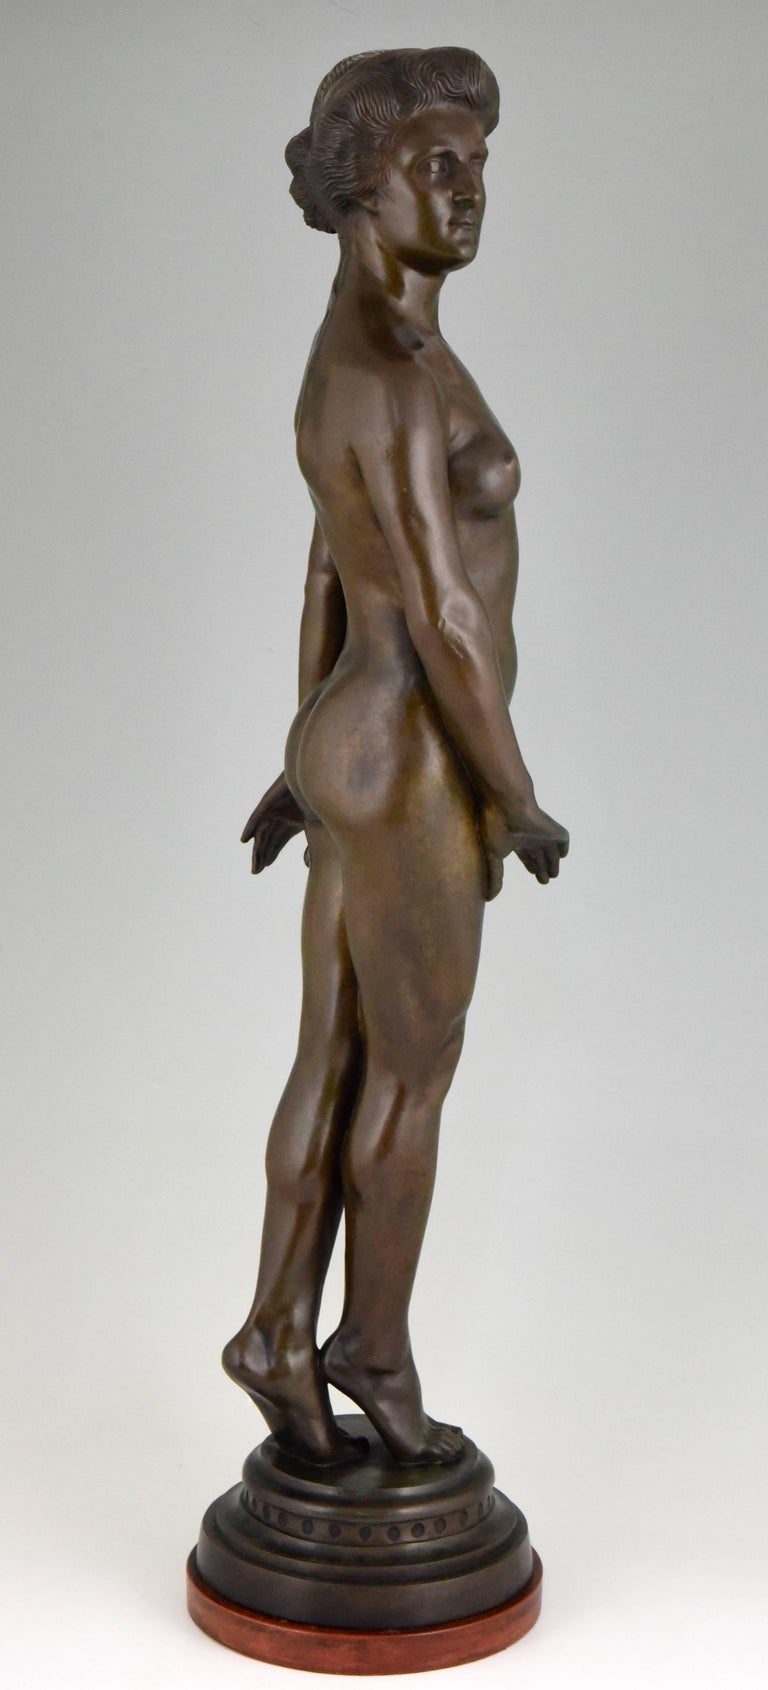 Mid-20th Century Art Deco Bronze Standing Nude by Wilhelm Oskar Prack, 1930 For Sale